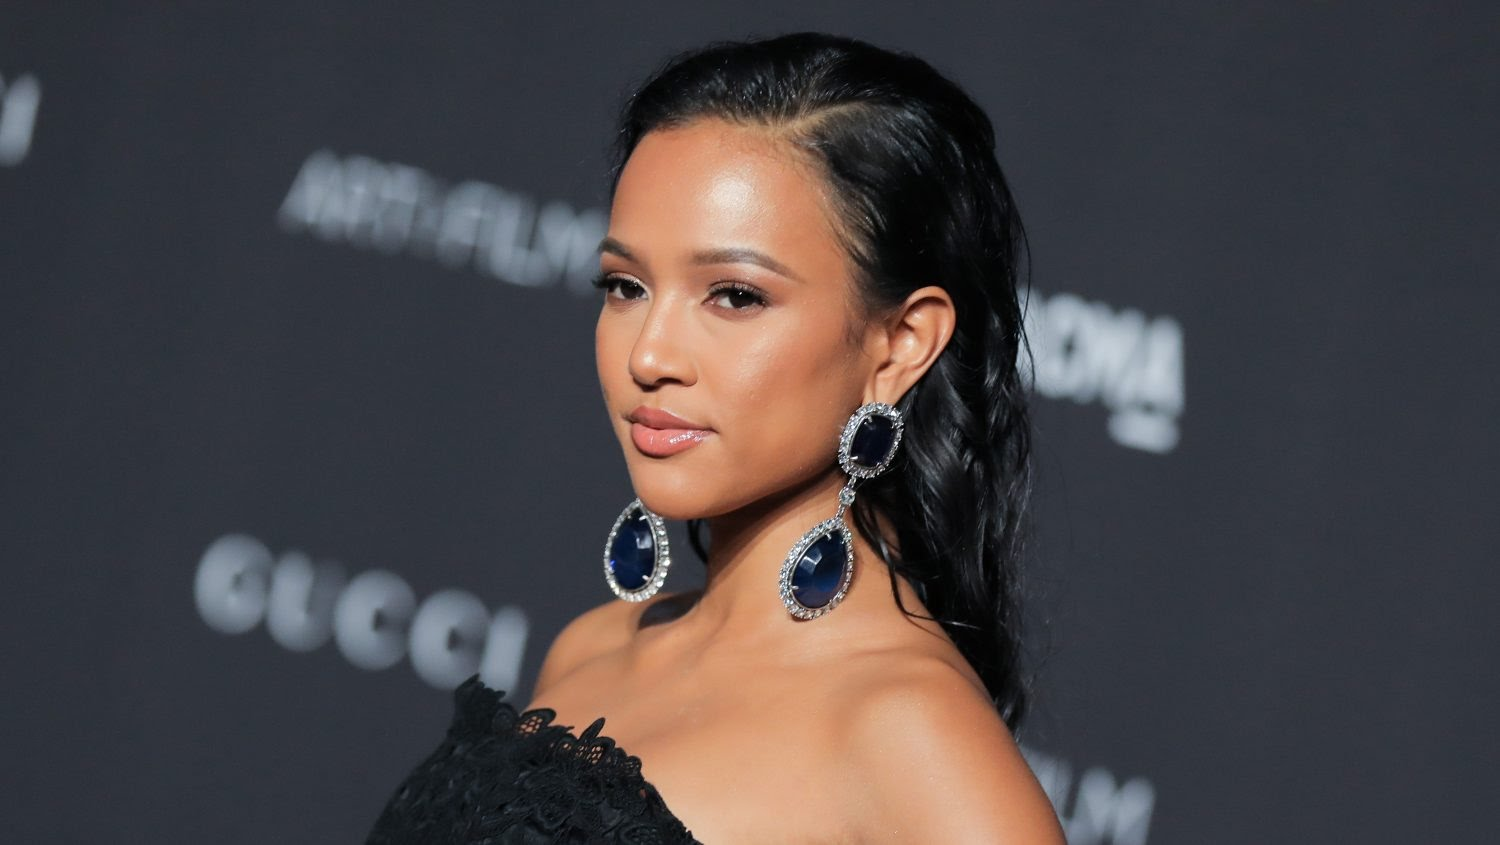 Chris Brown Trashed By Fans After Posting Clip Of His Ex Karrueche On Valentine's Day - iharare.com